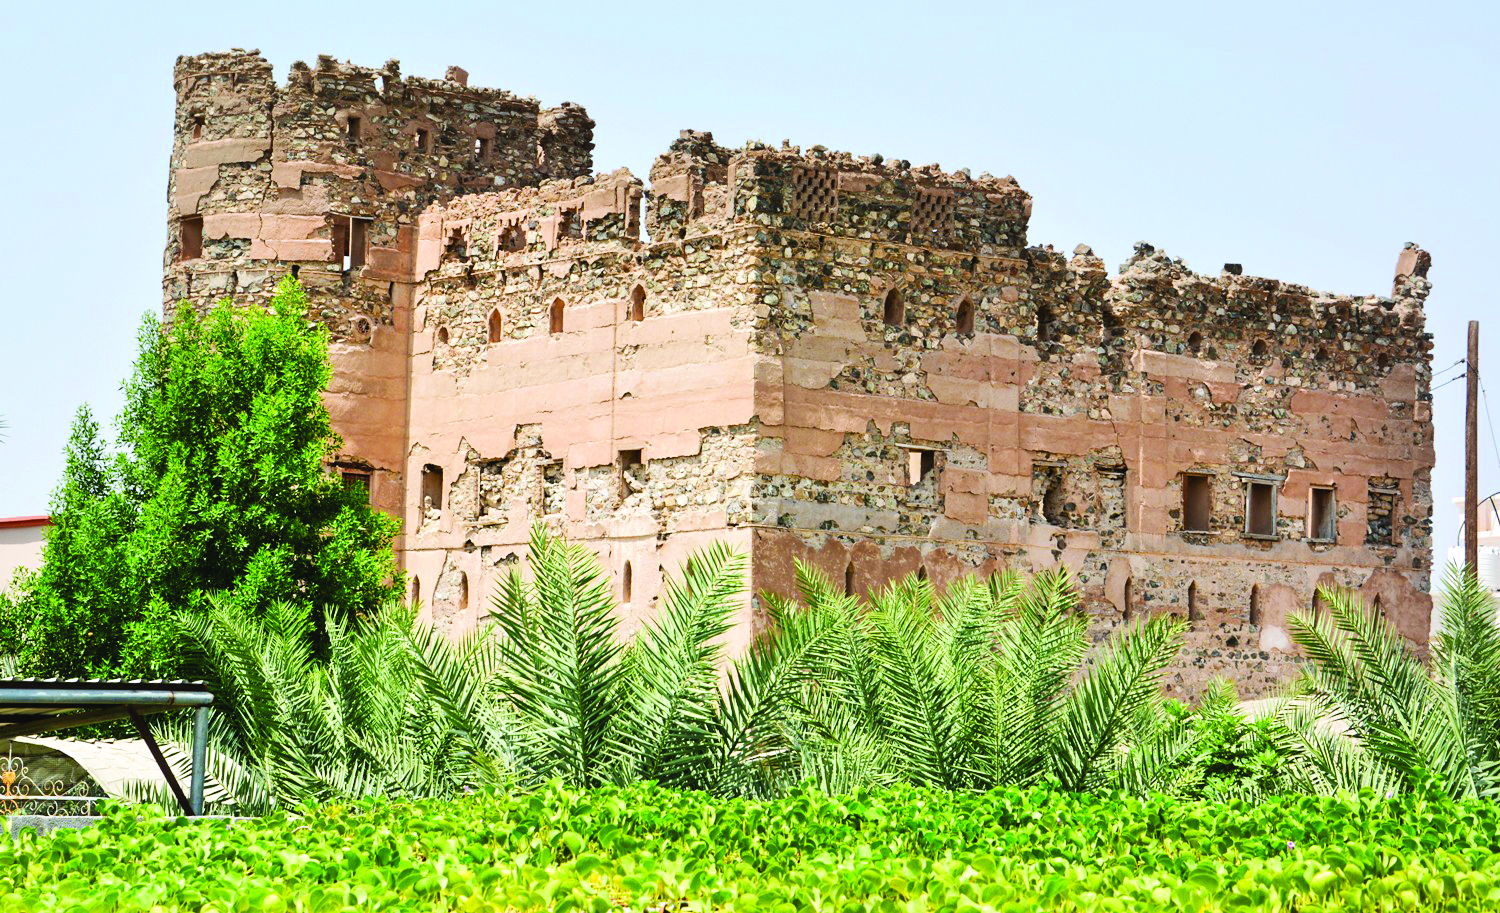 Oman tourism: North A'Sharqiyah is just right for a winter holiday